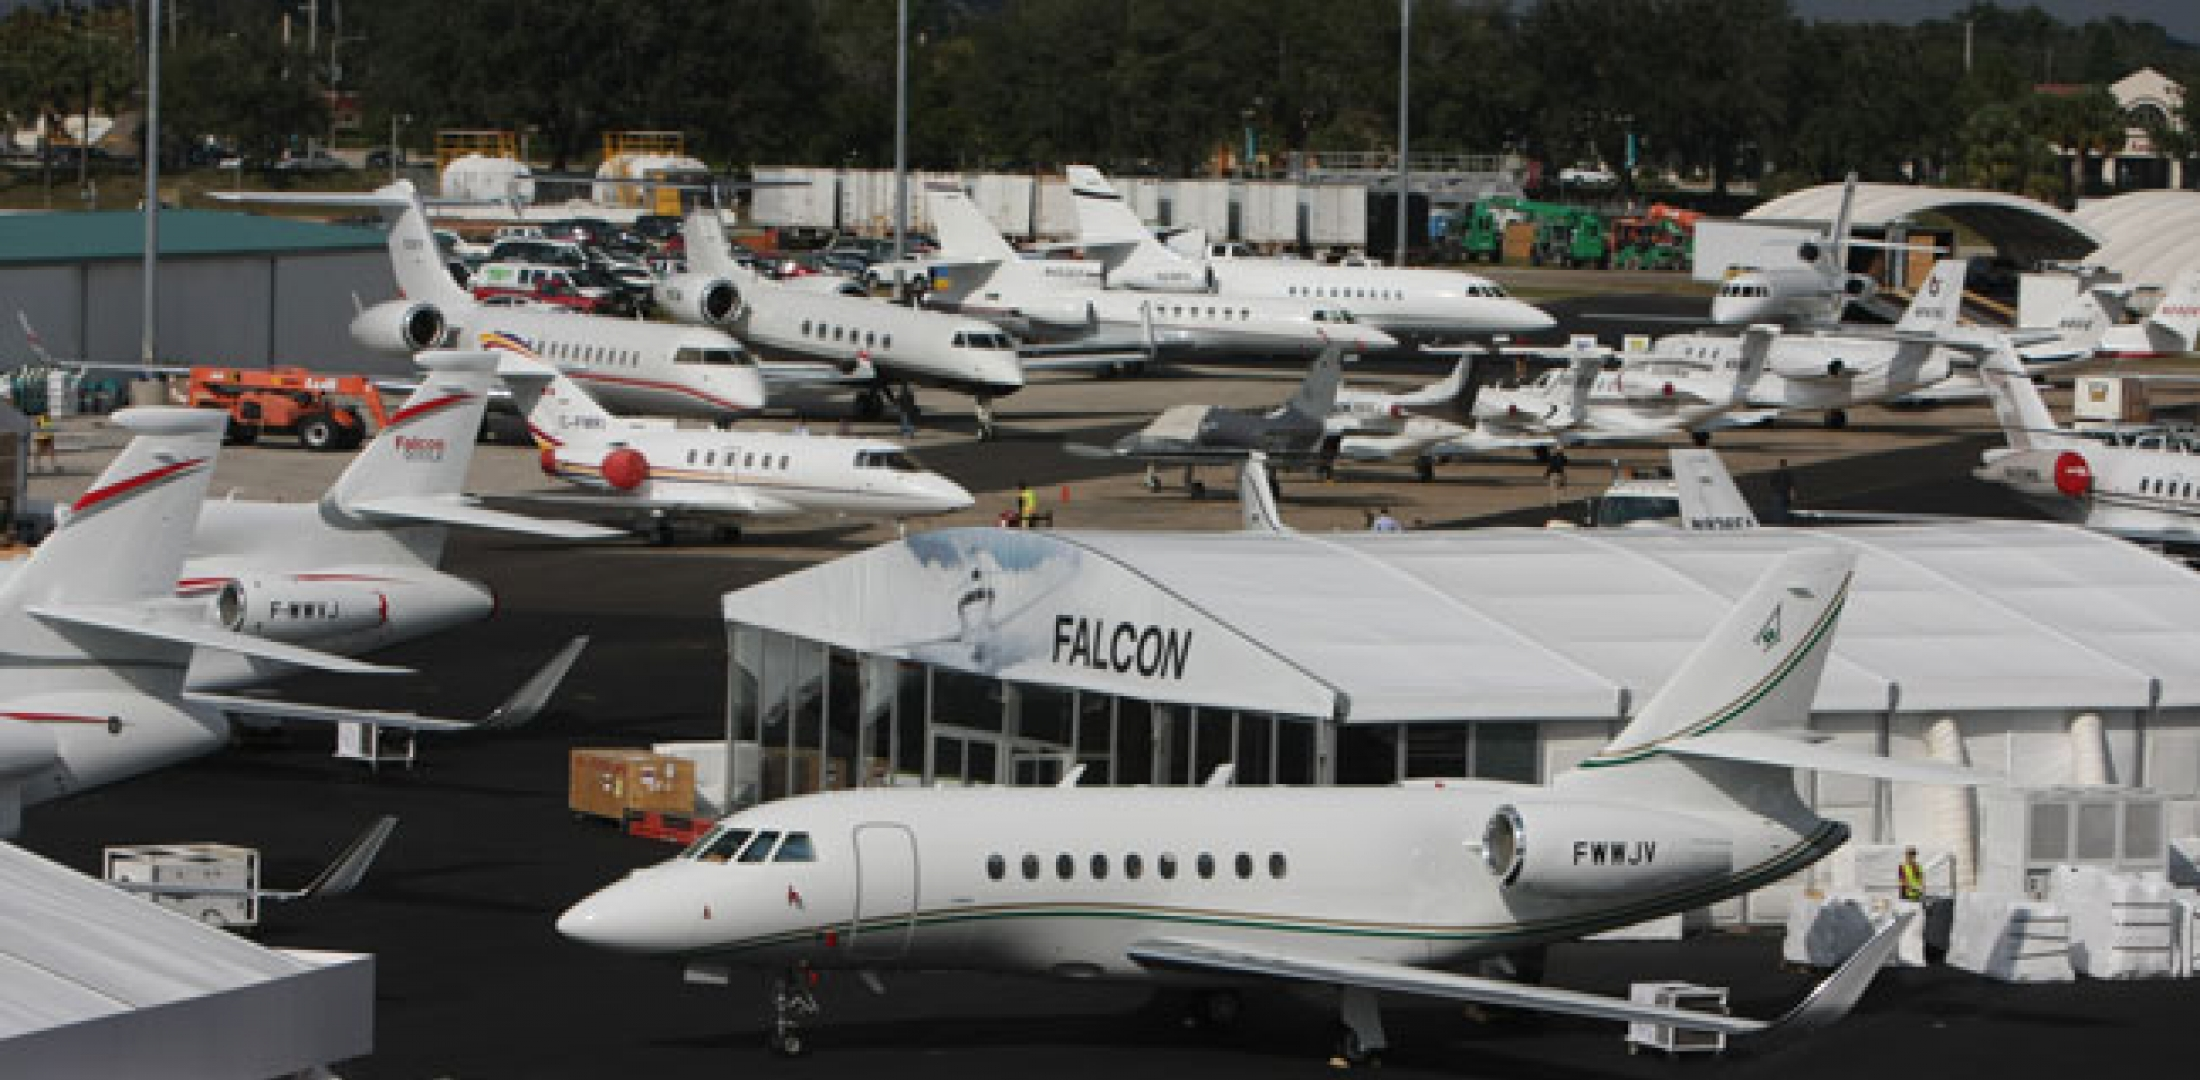 Overview of NBAA static display area